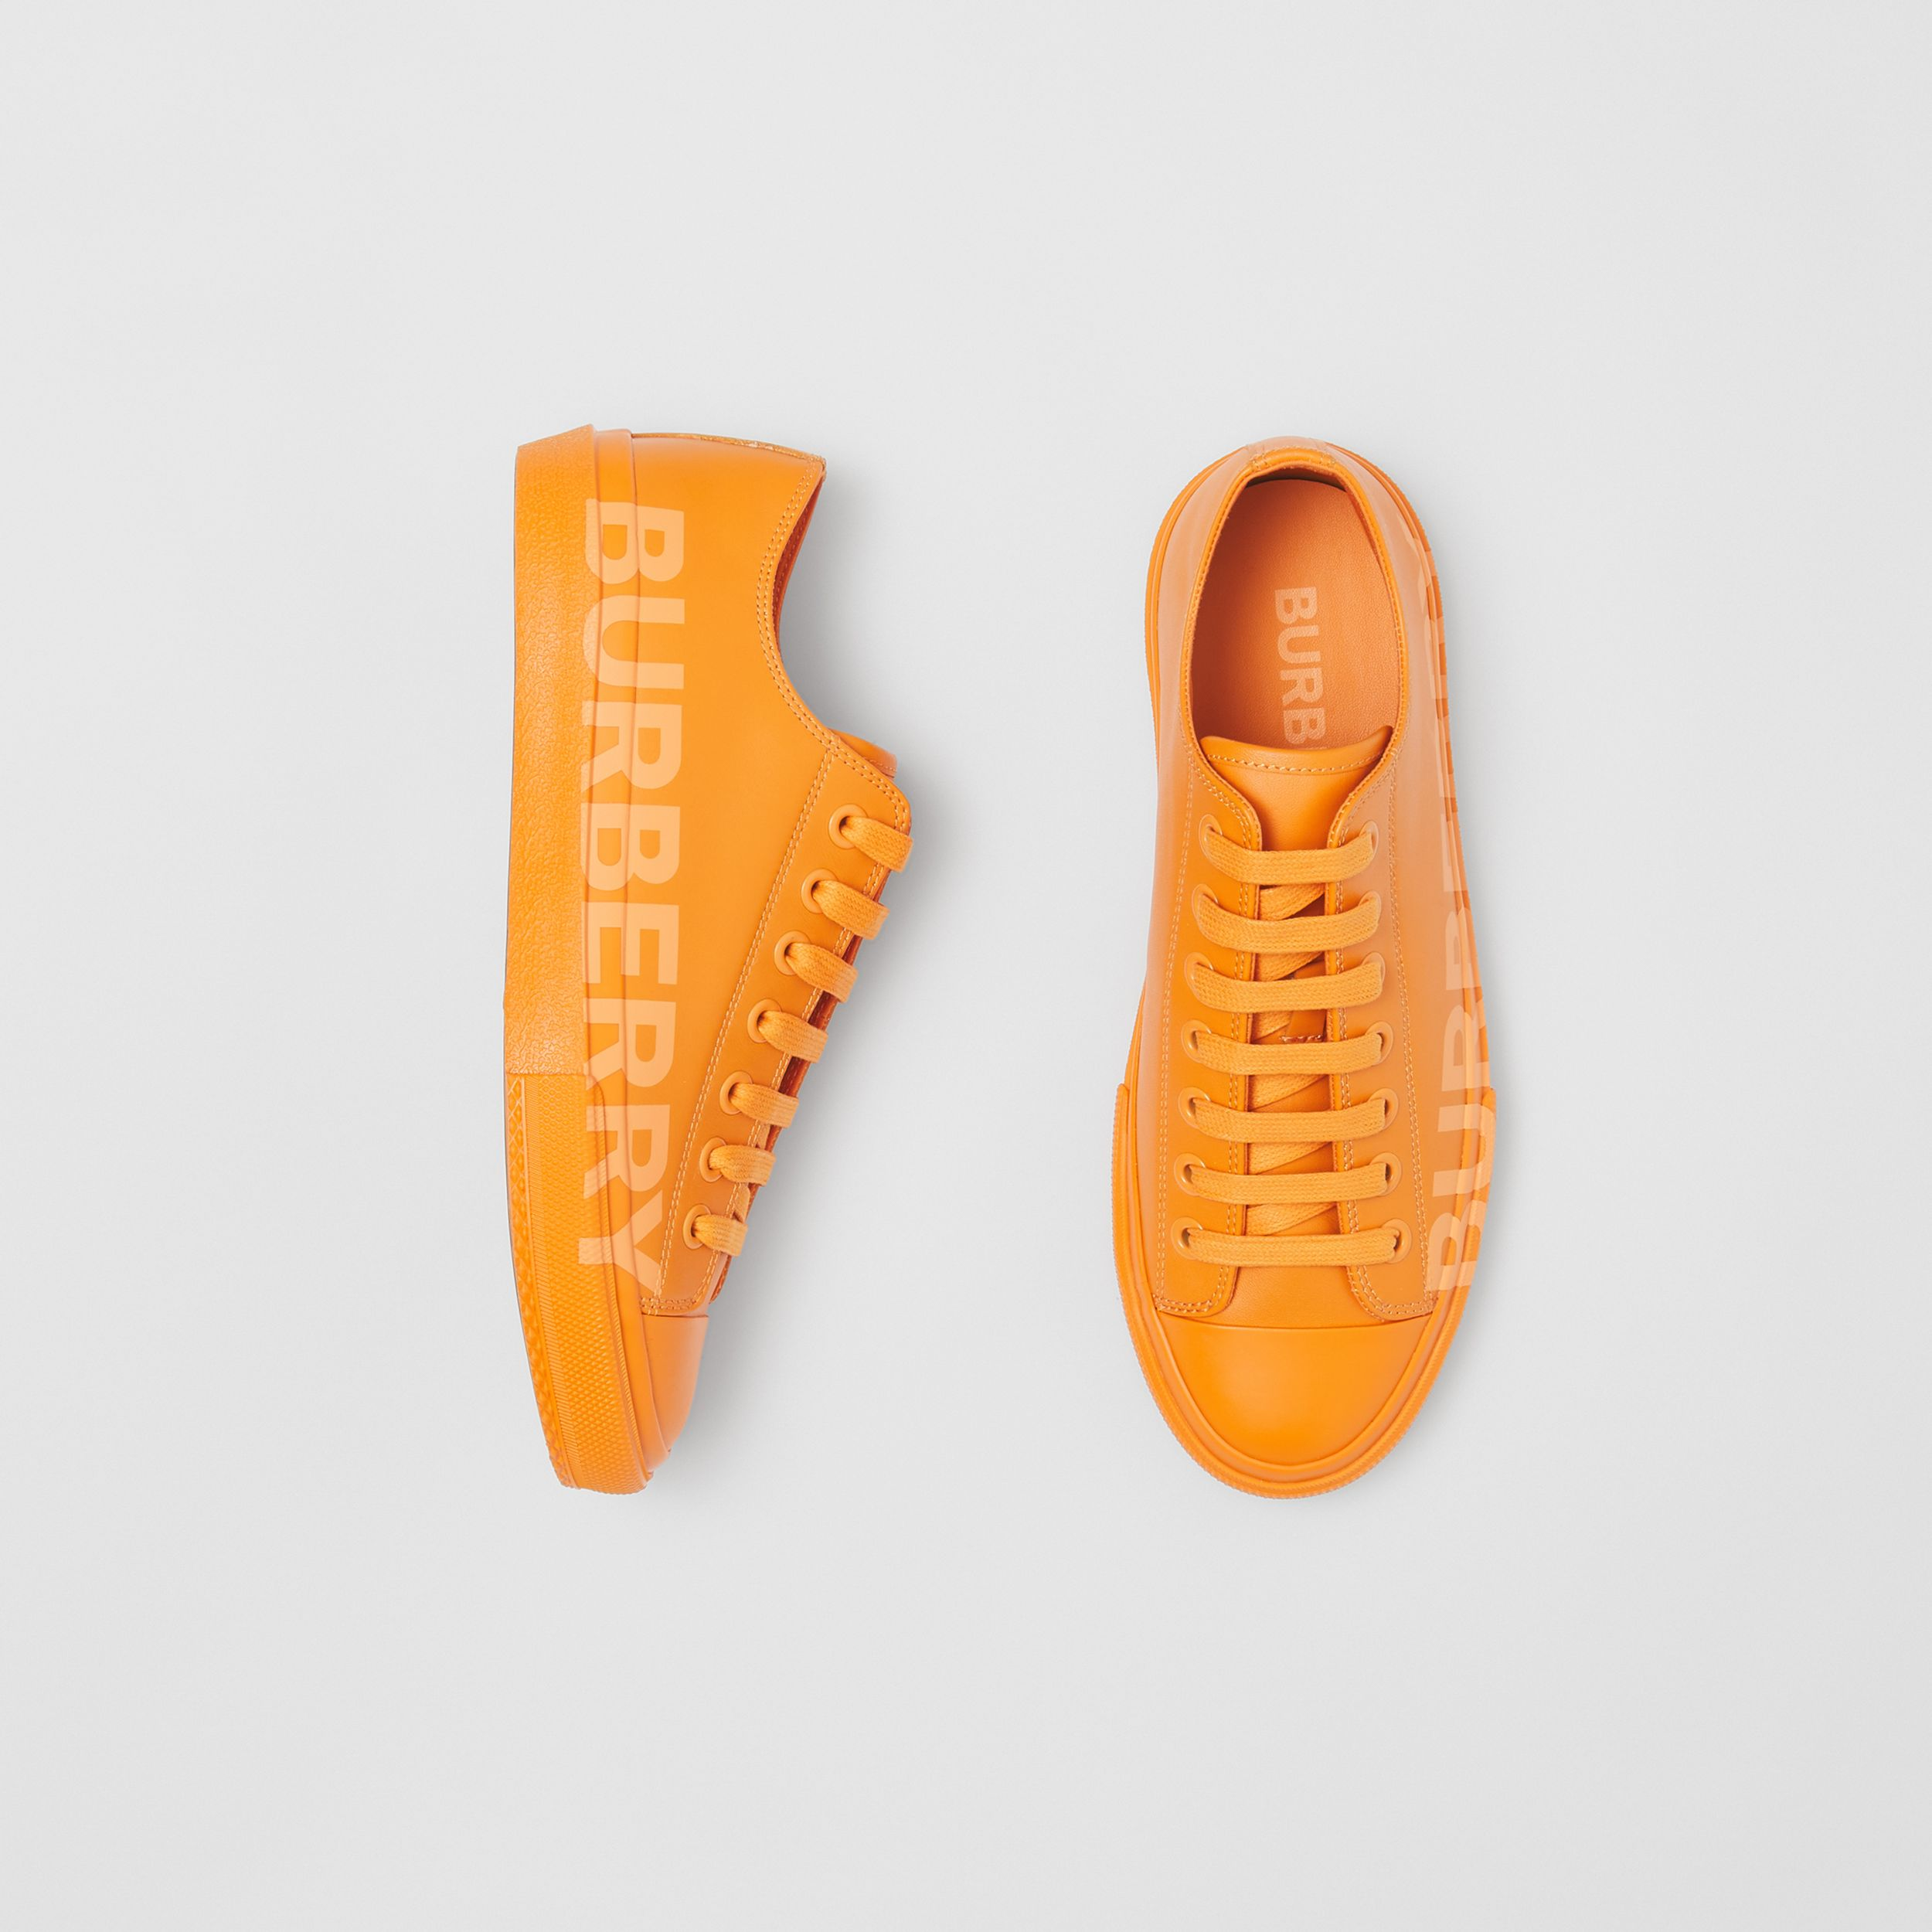 Logo Print Leather Sneakers – Online Exclusive in Deep Orange - Women | Burberry Hong Kong S.A.R. - 1